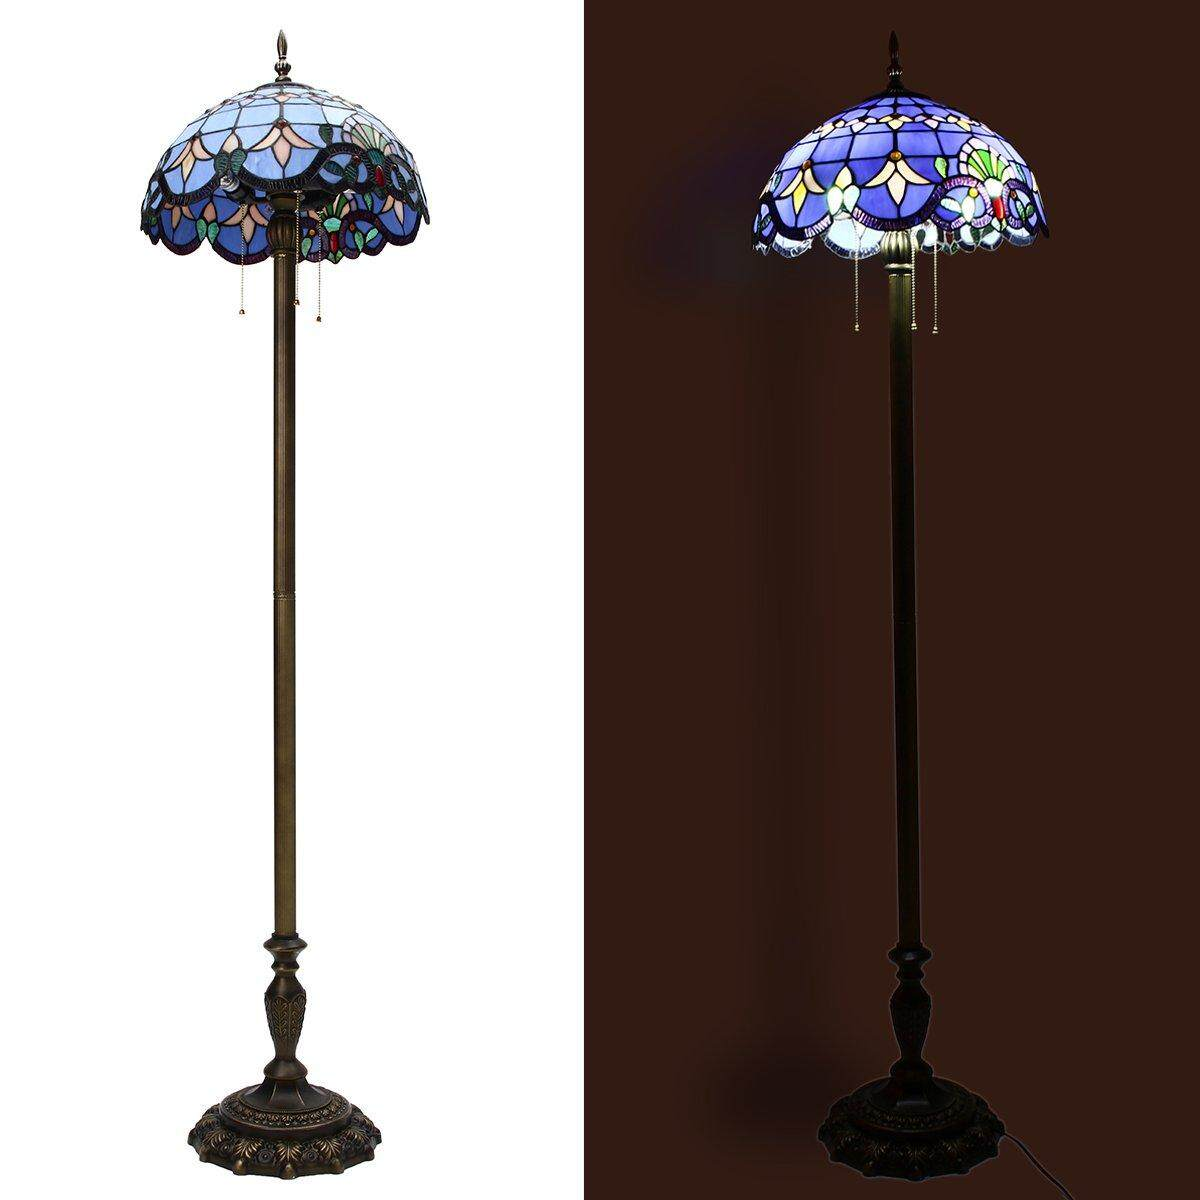 Floor Lamp Victorian Style Vintage Stained Glass Antique Led Light Home Decor By Glimmer.